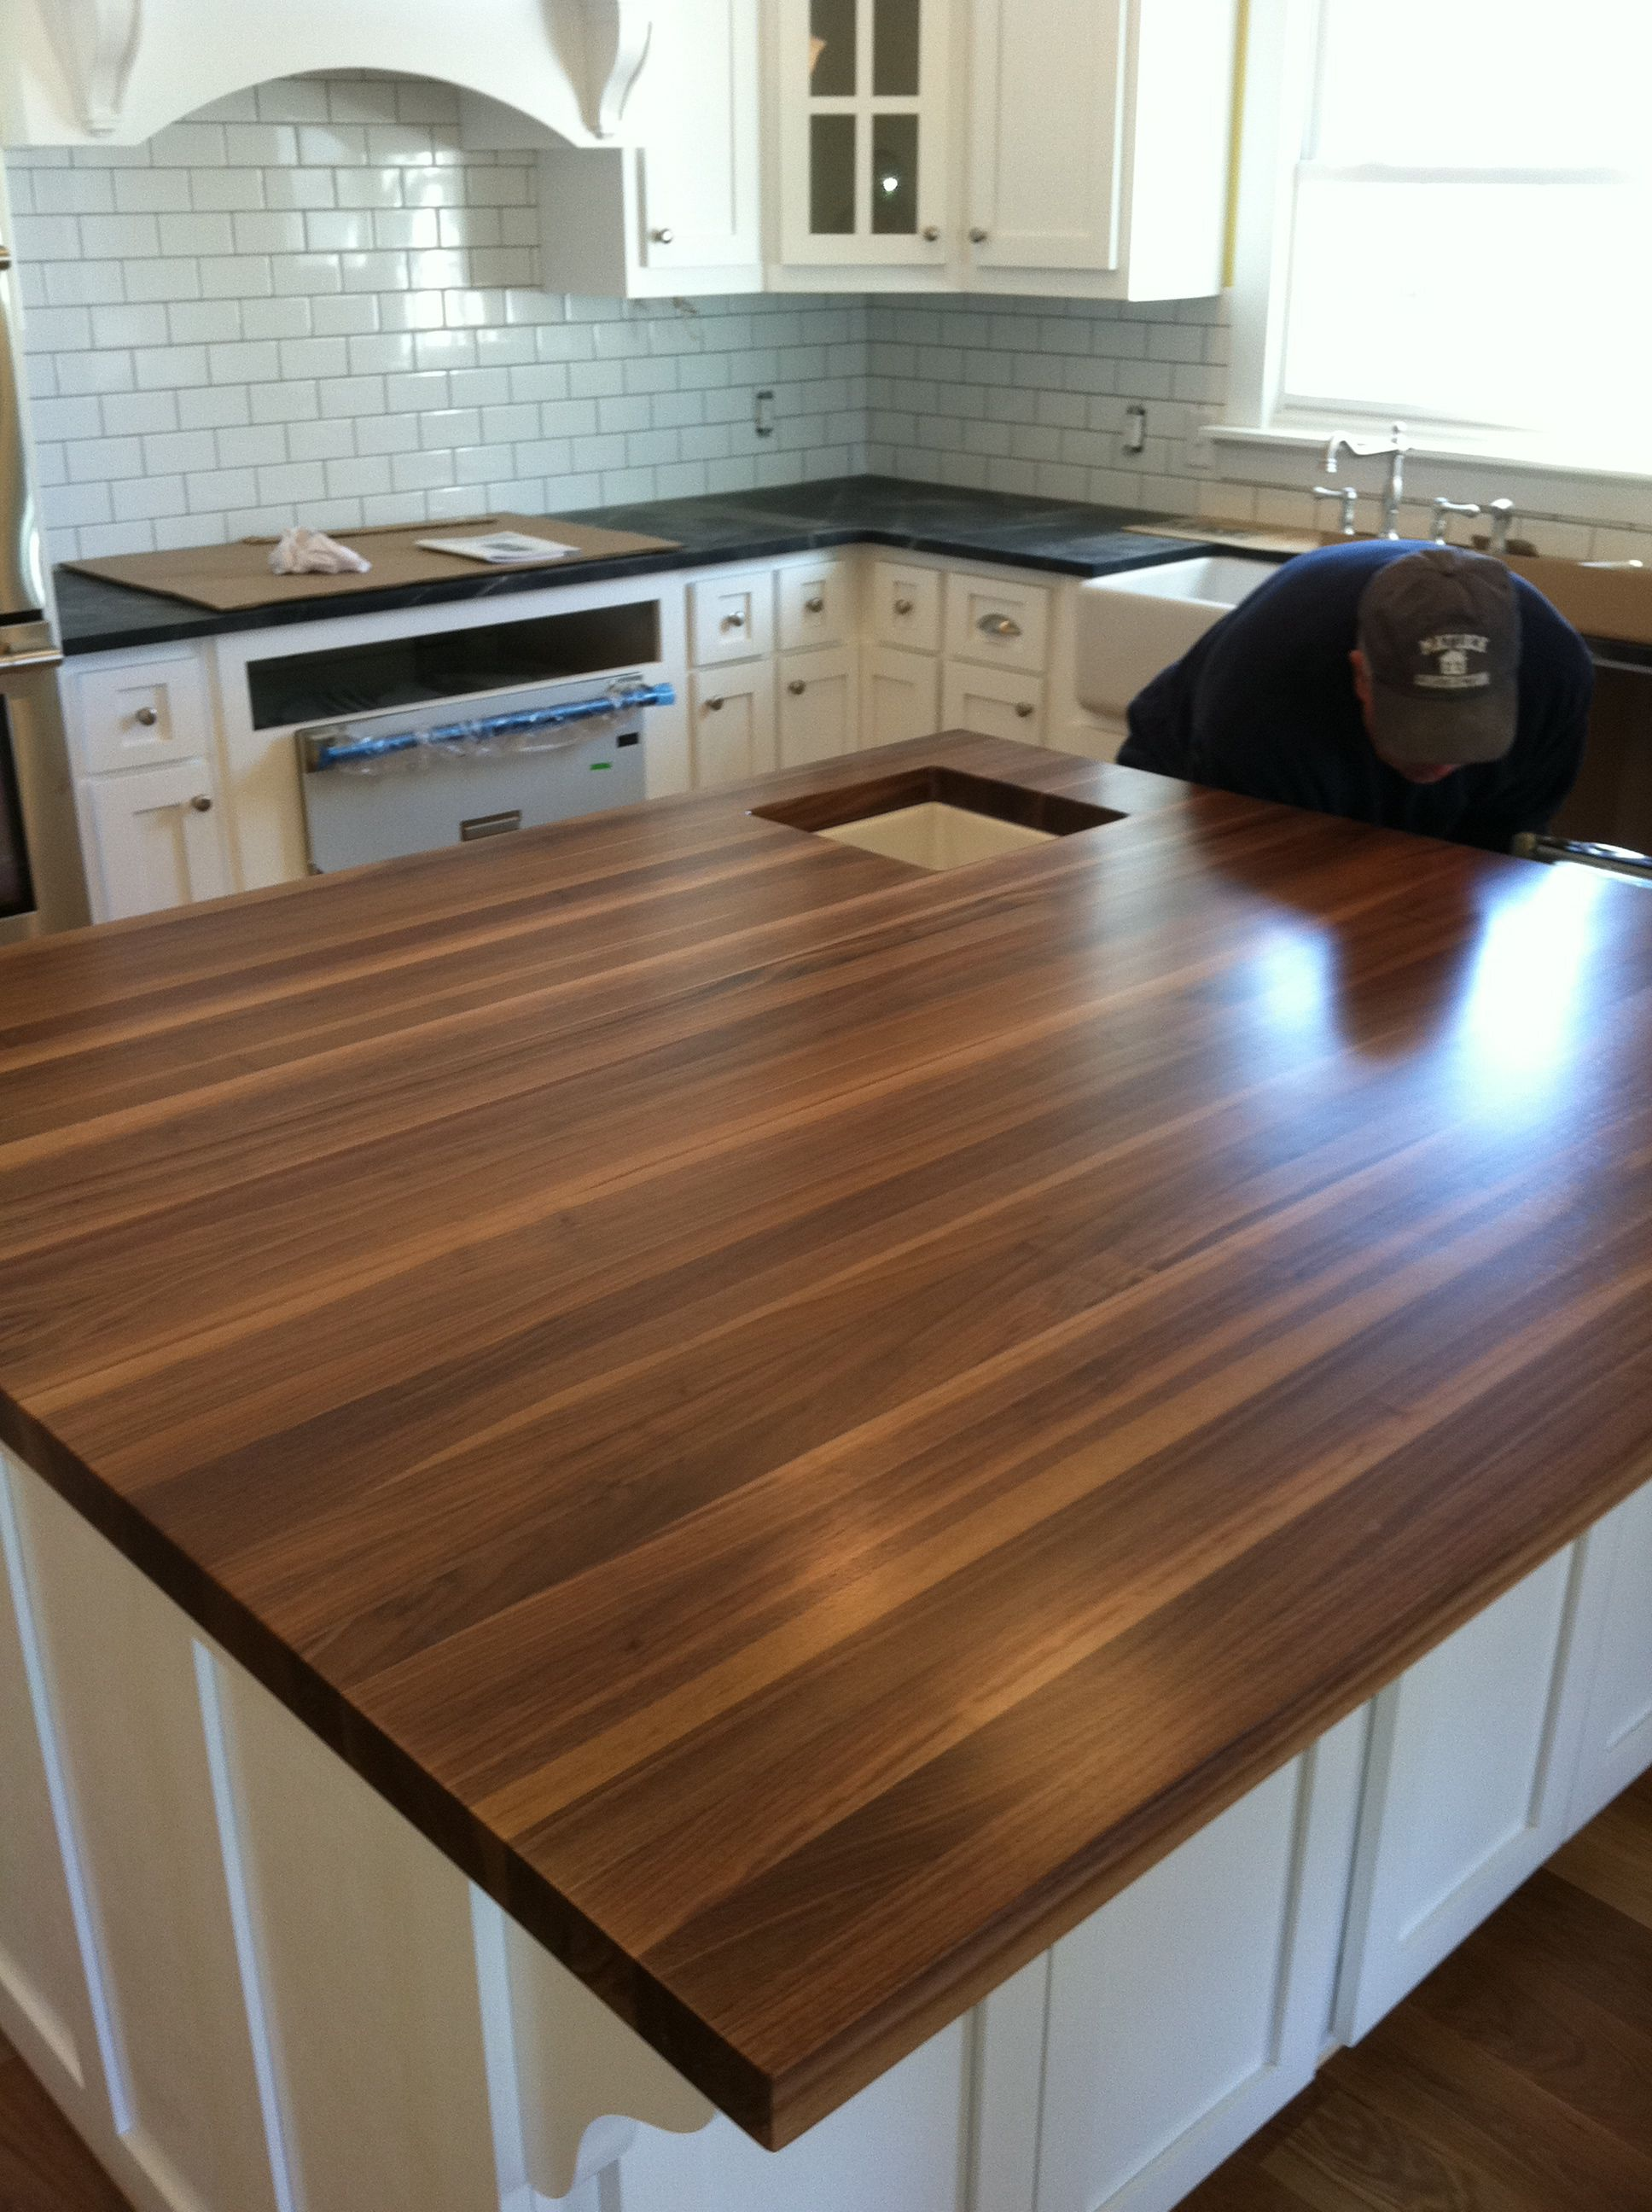 Best Place To Buy Butcher Block Countertops This Is The John Boos Walnut Butcher Block That Is My